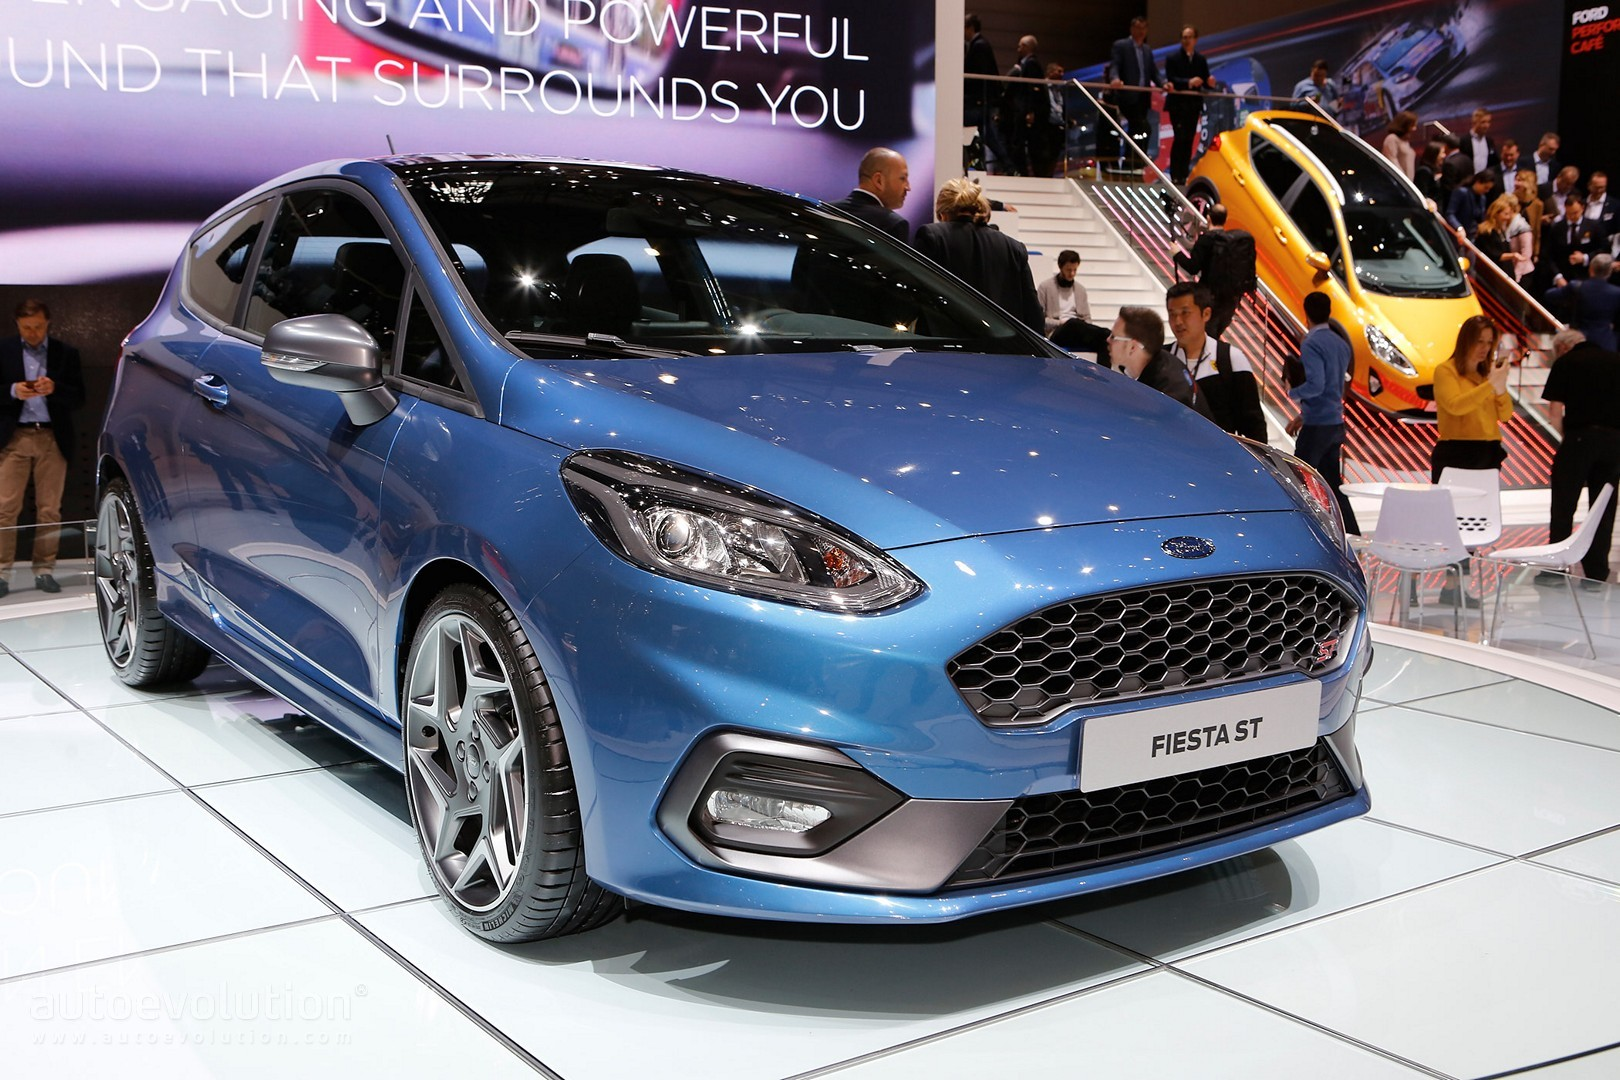 2018 ford fiesta st goes live in geneva has it got enough. Black Bedroom Furniture Sets. Home Design Ideas